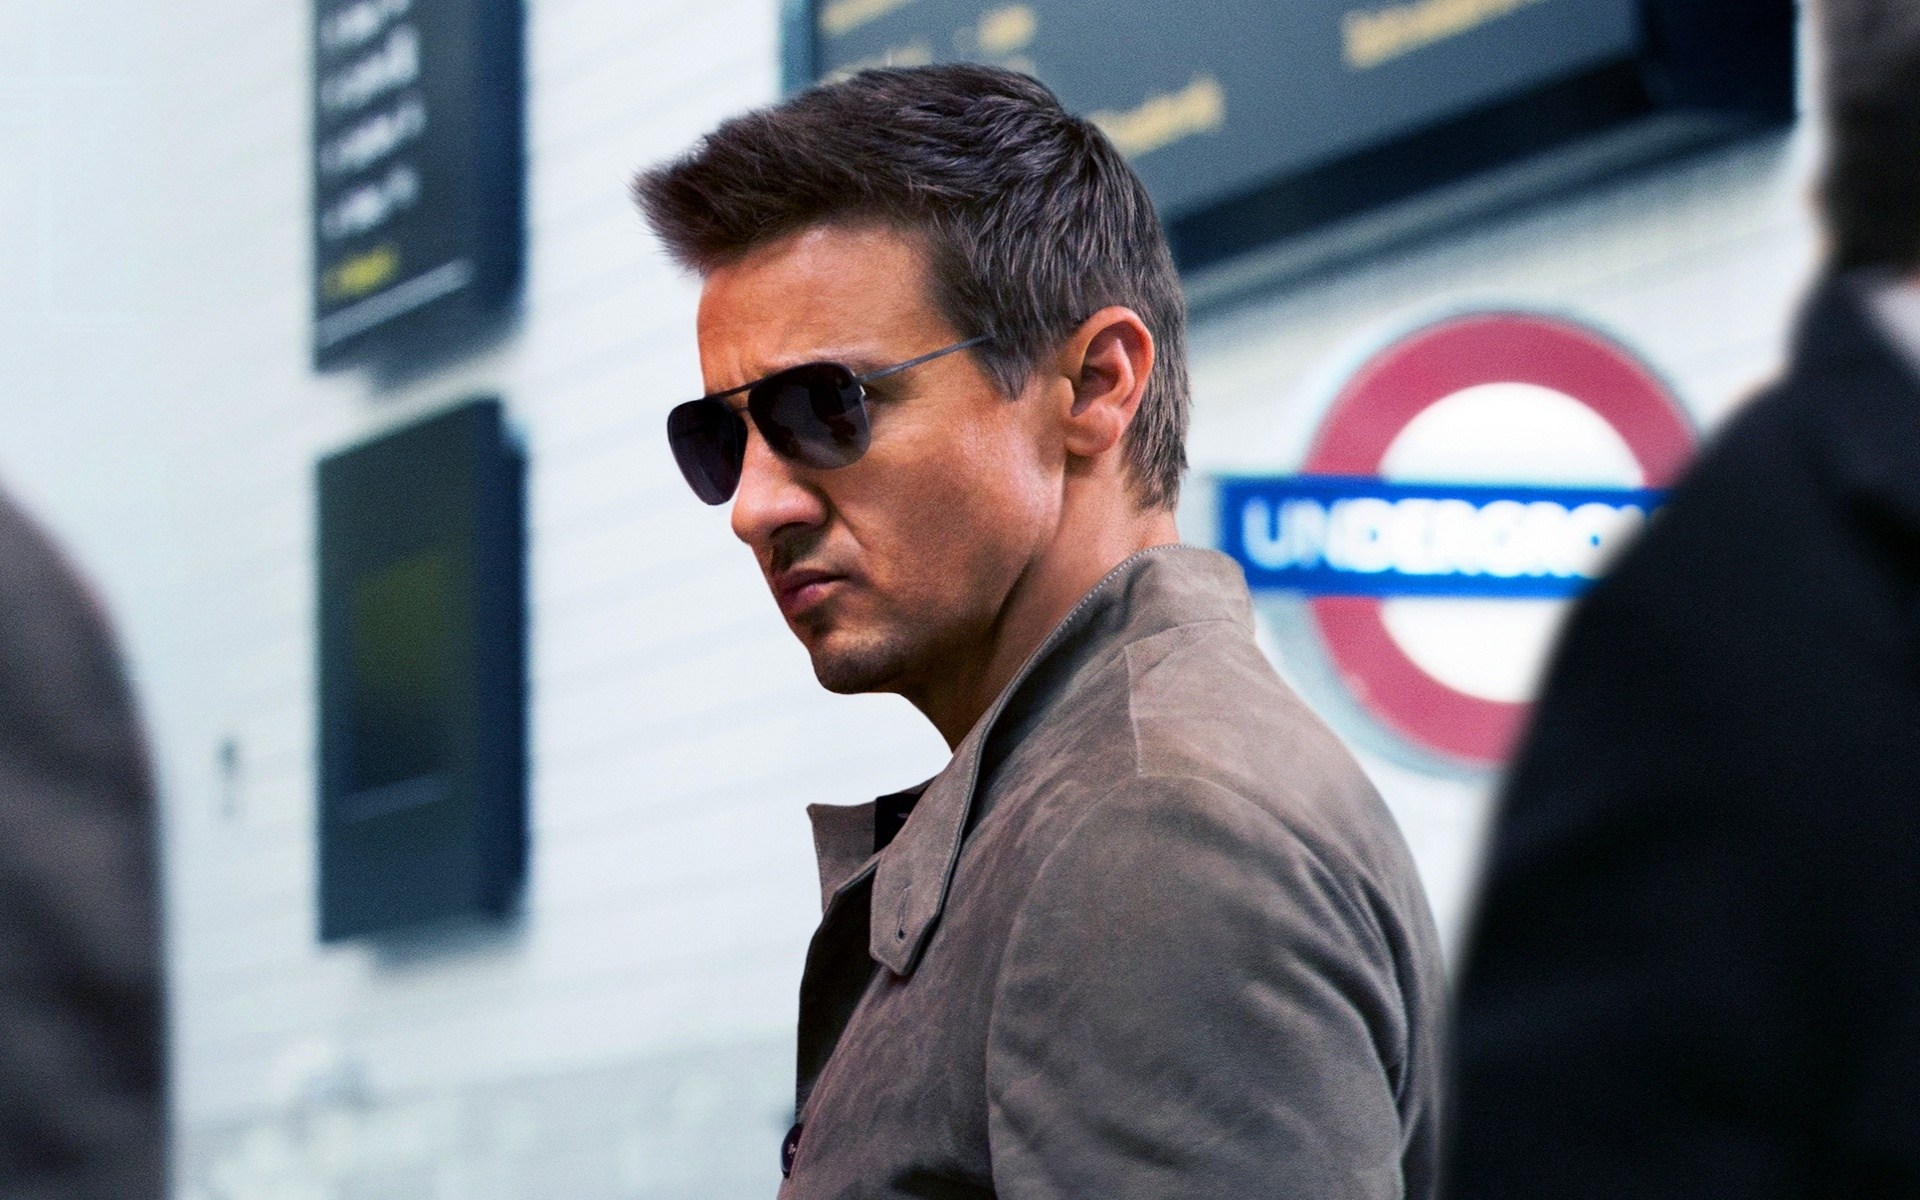 Jeremy Renner Glasses Wallpaper 66260 1920x1200px